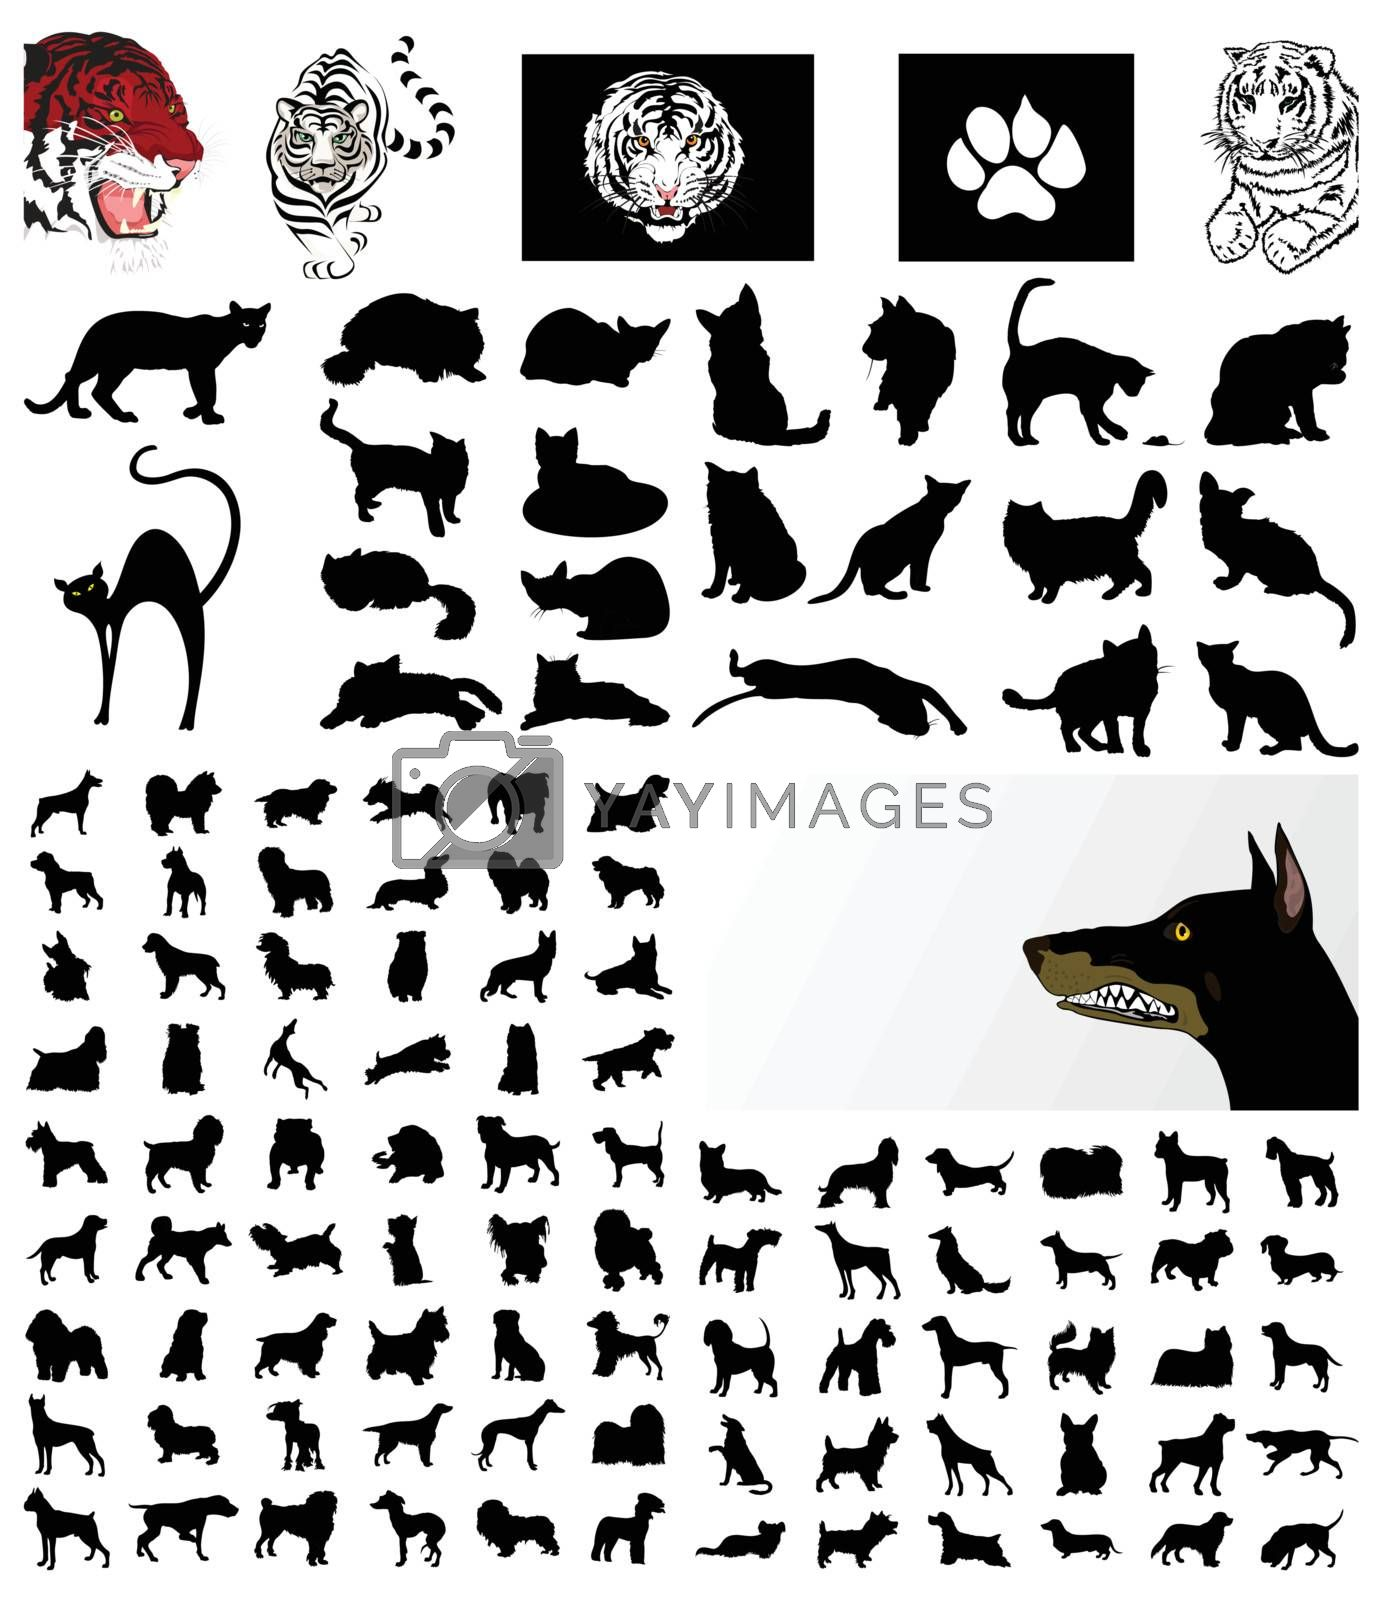 Collection of silhouettes of cats and dogs. A vector illustration